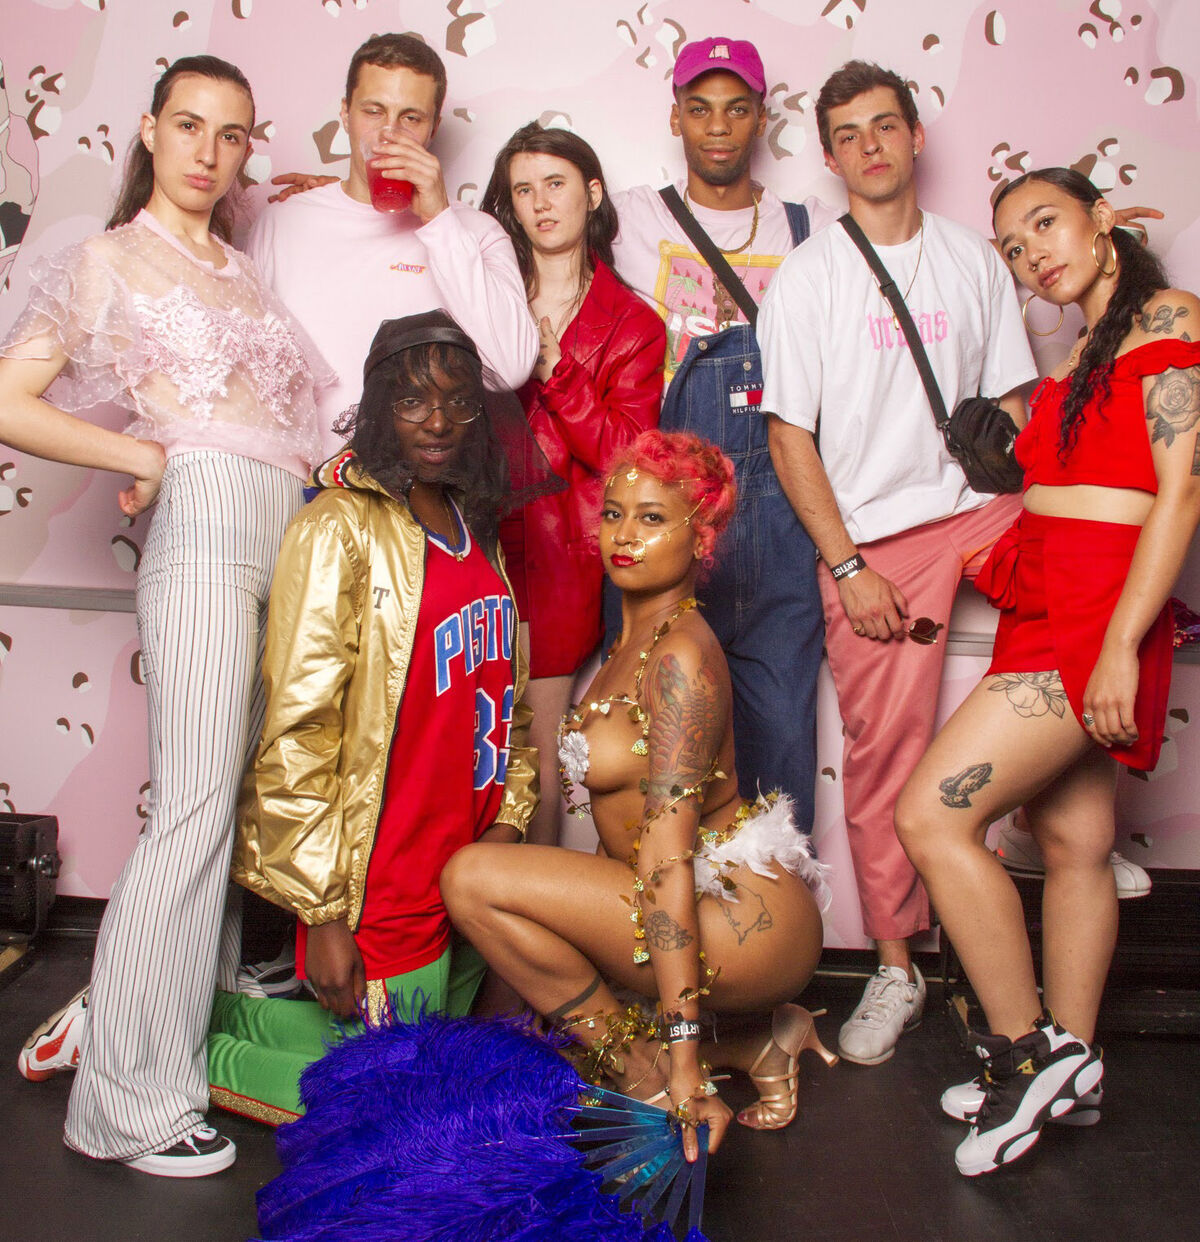 BRUJAS at BRUJAS x Performance Space New York: Anti-Prom at the Red Bull Music Festival, New York, 2018. Courtesy of BRUJAS.